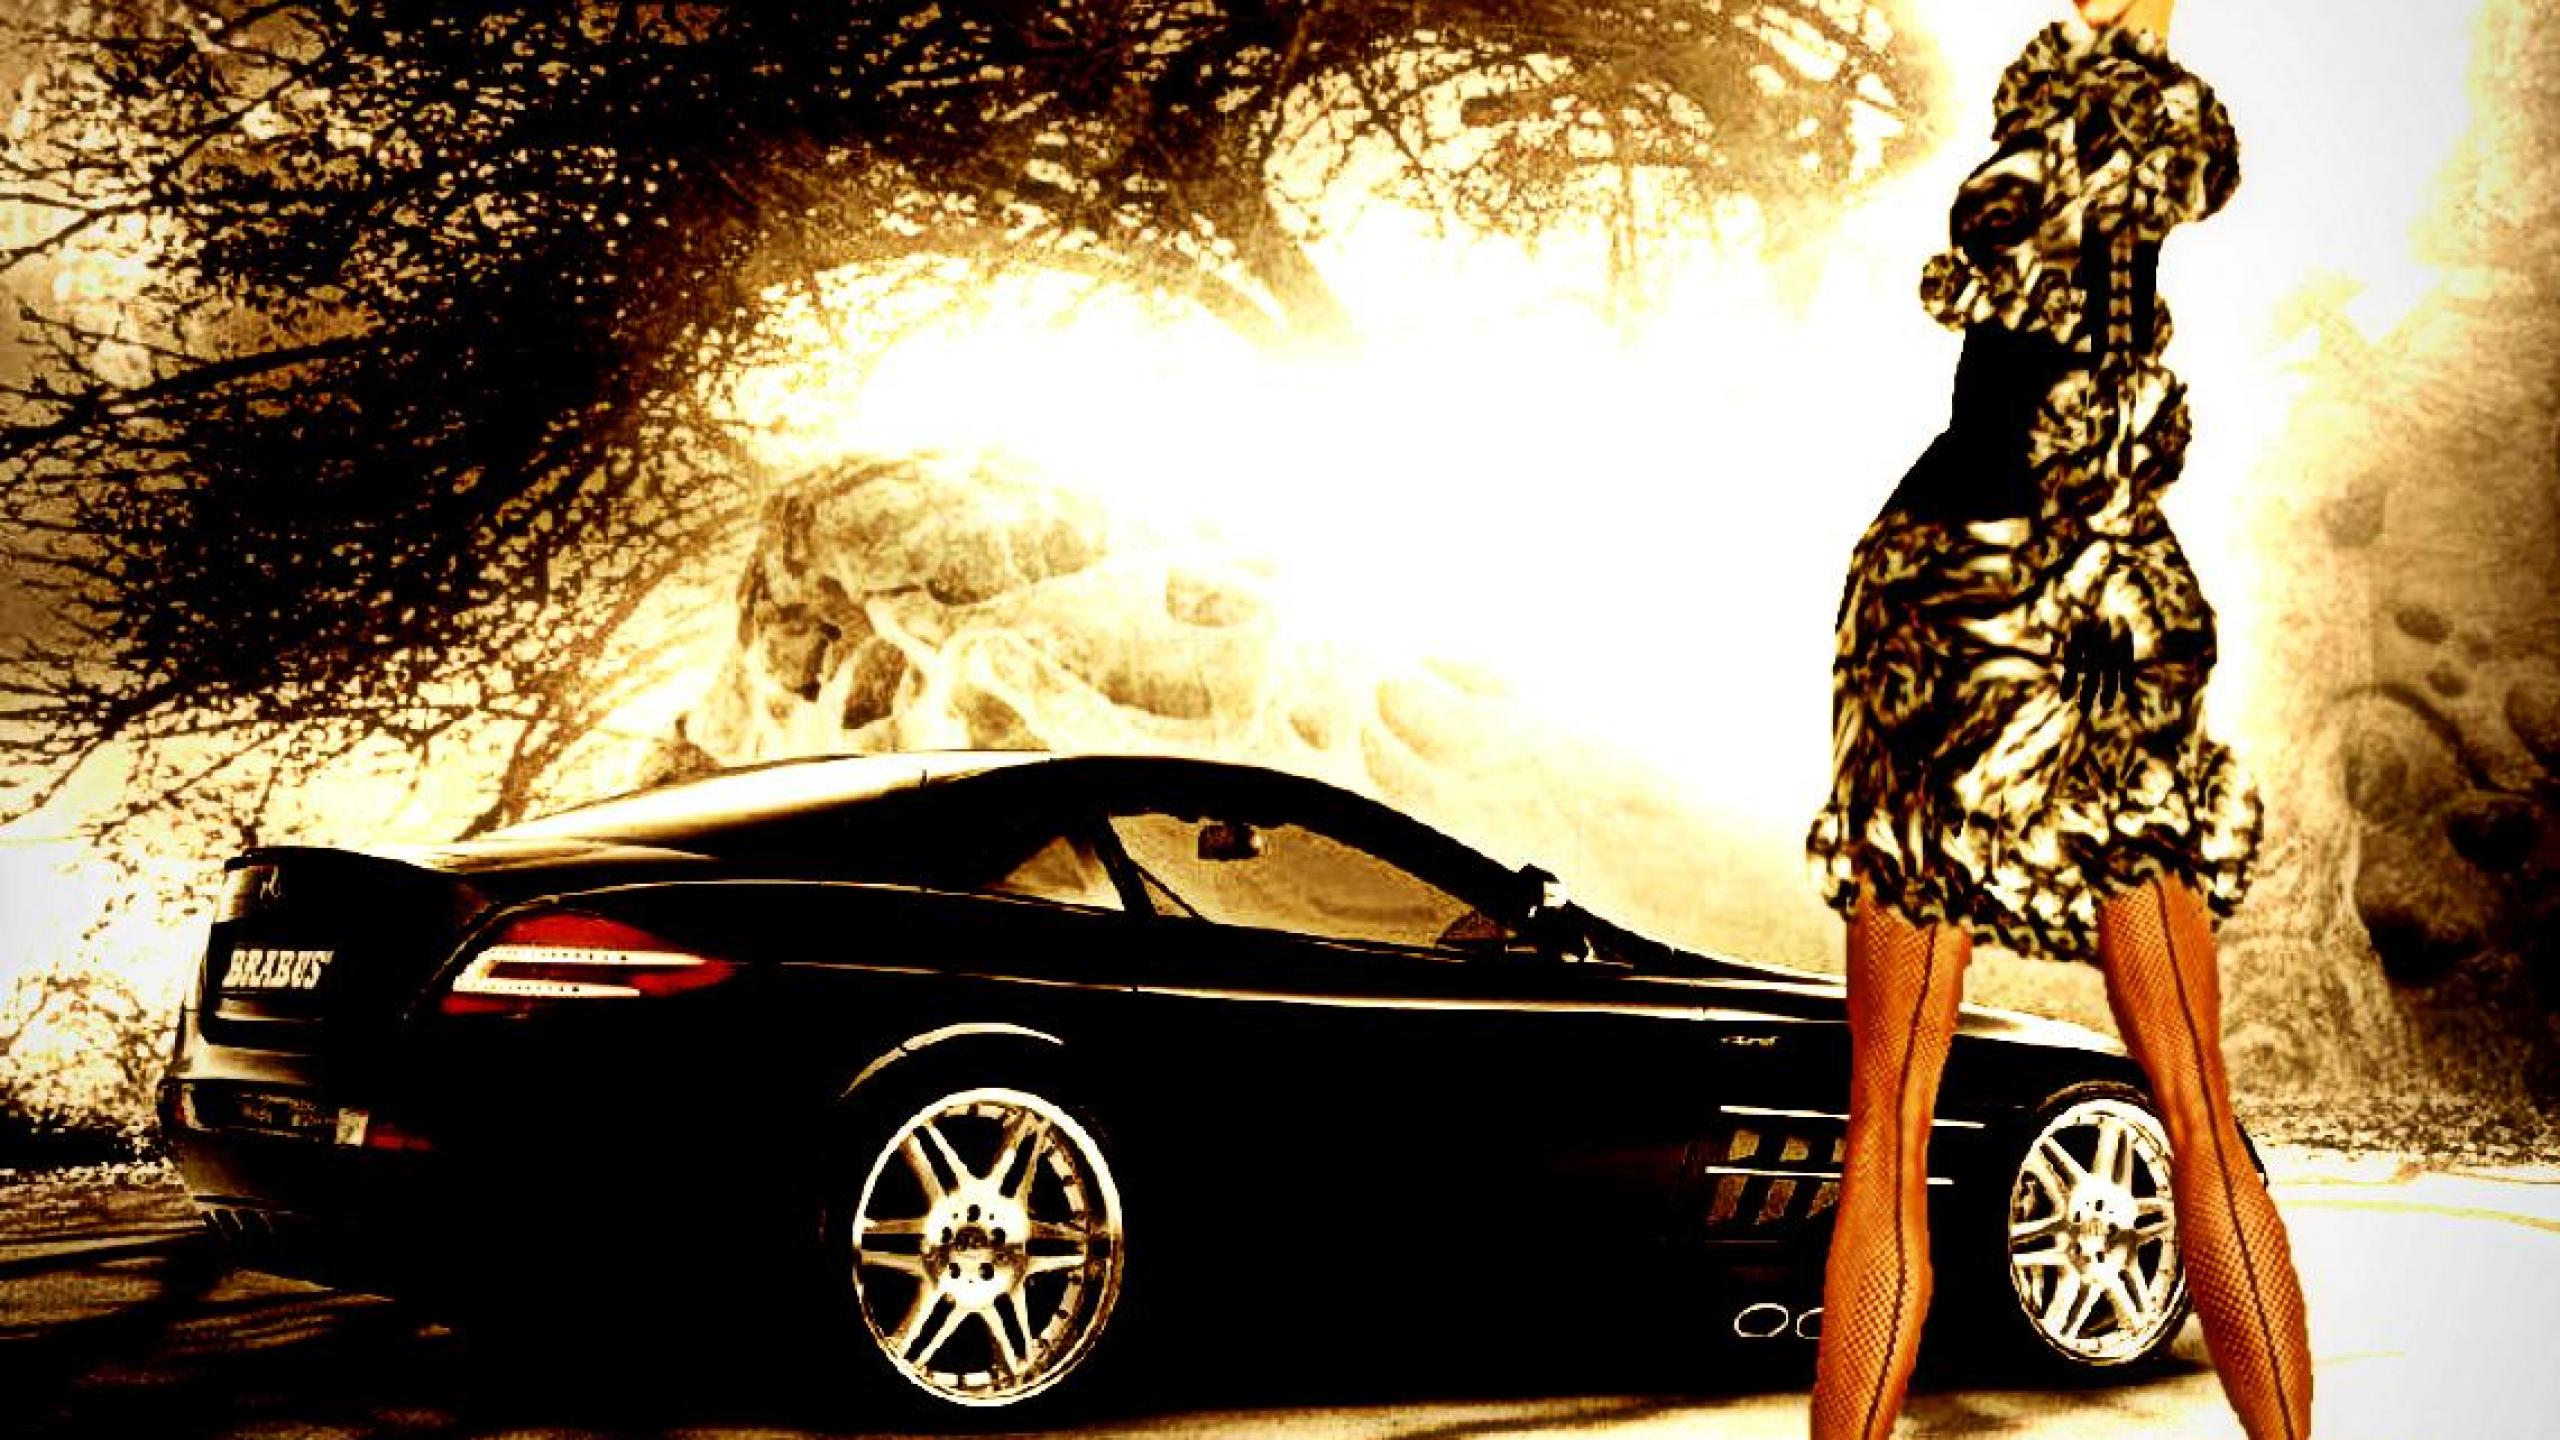 Hd Car Wallpapers 1080p For Mobile Fantasy Car Wallpapers High Quality Download Free